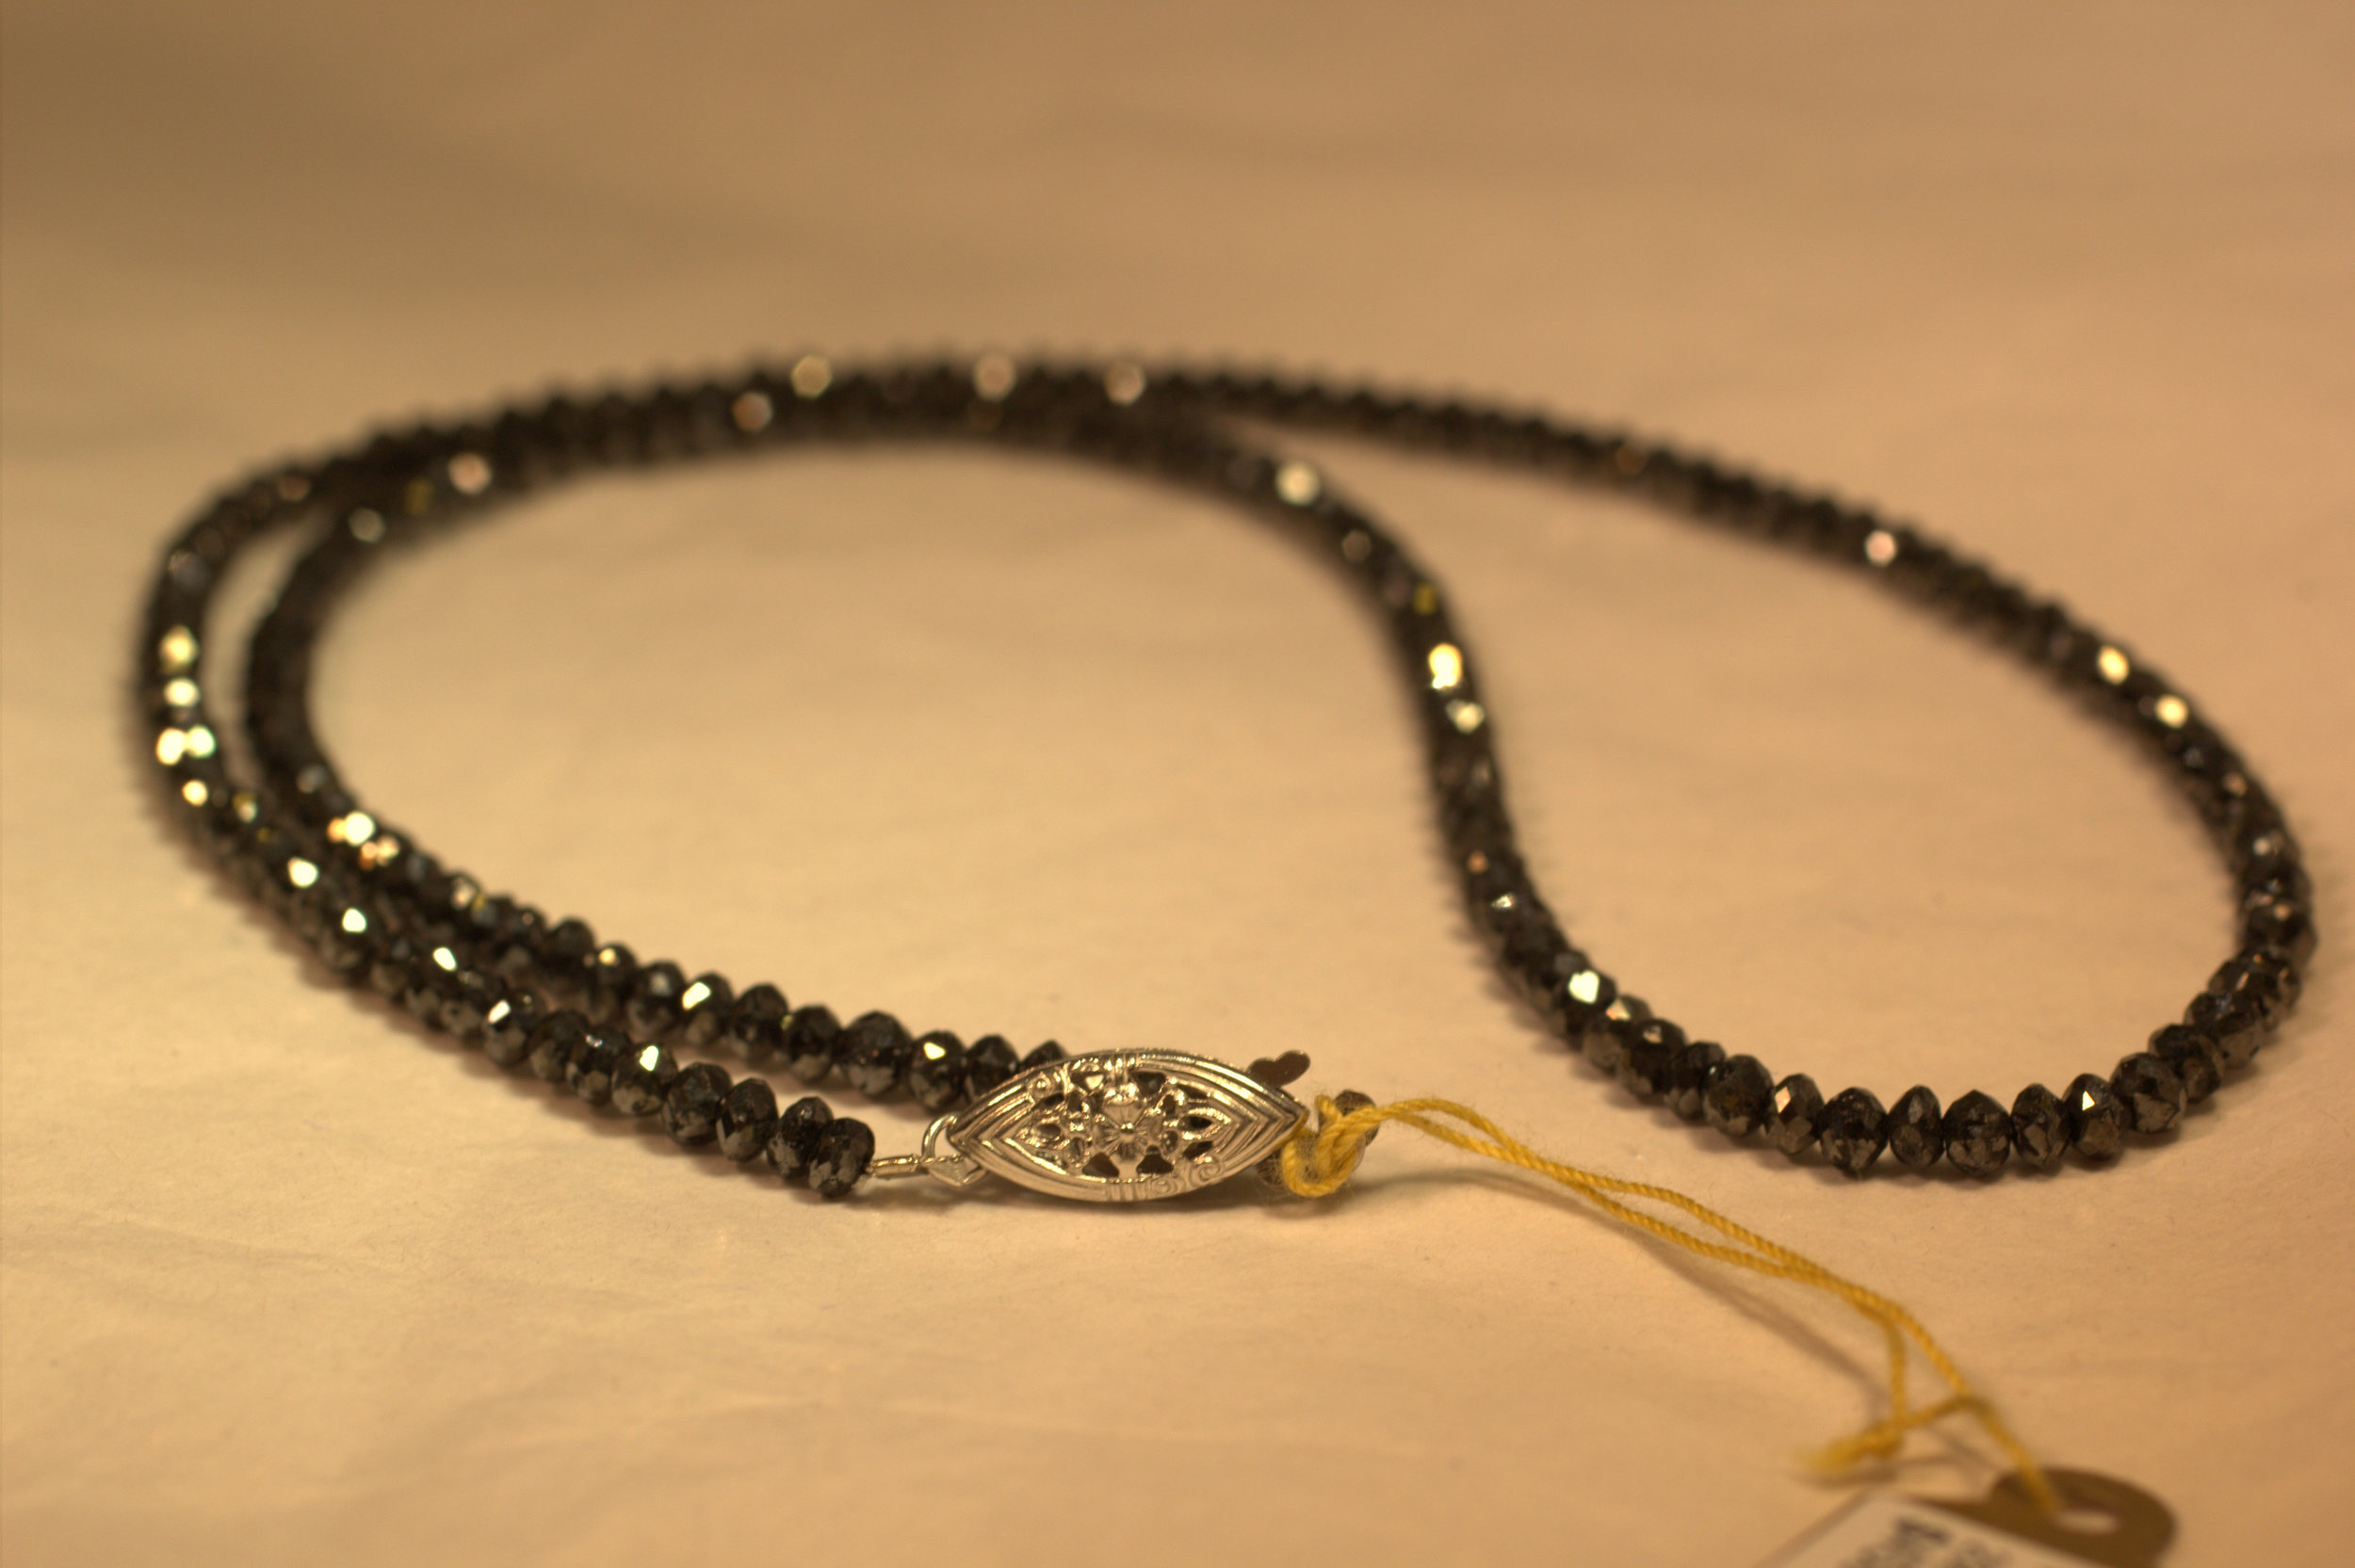 20 carat black diamond strand. The strand faceted and drilled black diamonds strung together with a 14 karat white gold clasp. The diamonds are all partially faceted and sparkle more than any other black stone.